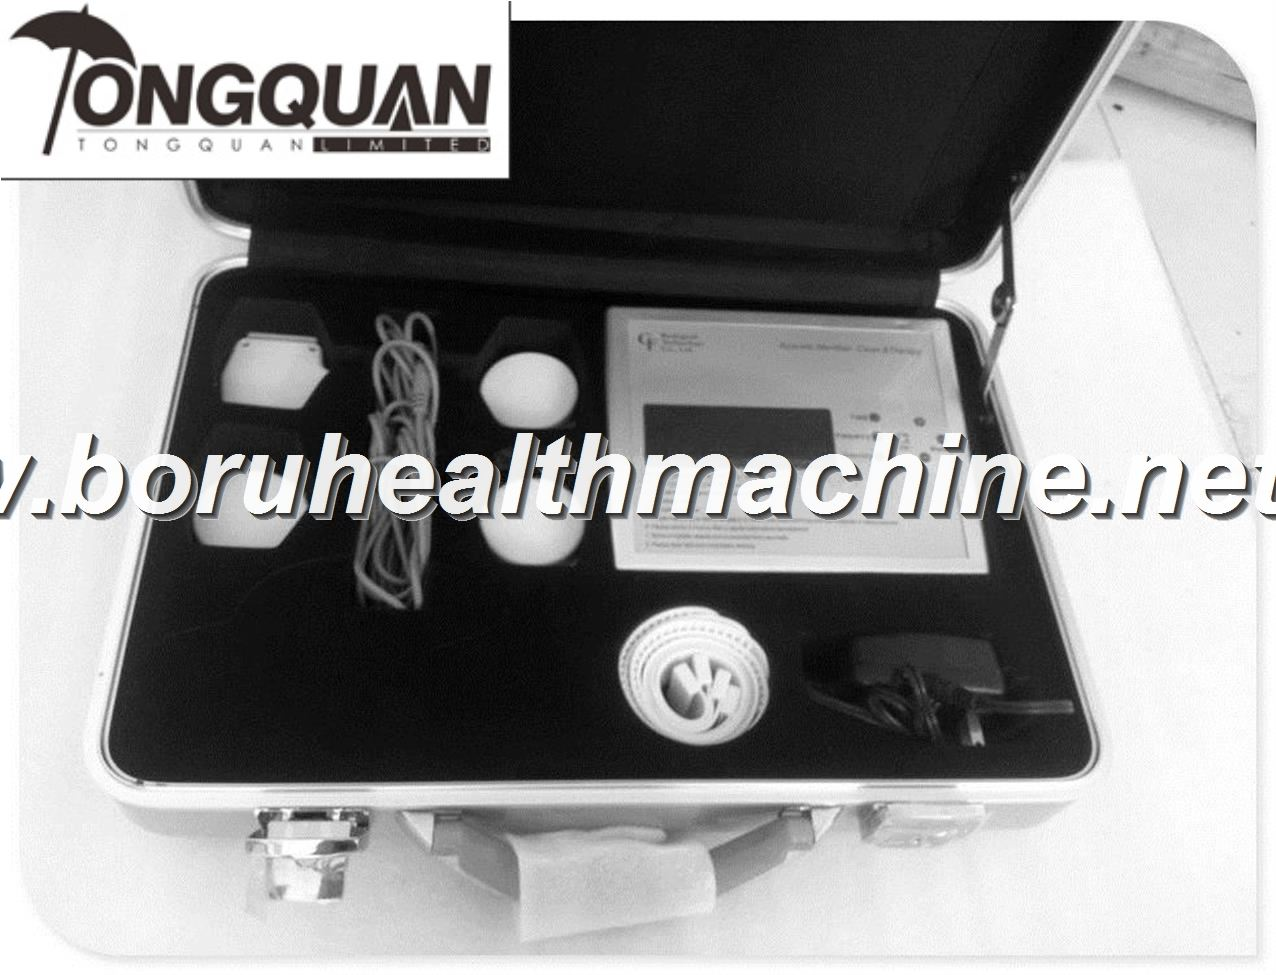 2015 Lateset Meridian Clean Health Analyzer with CE Approved